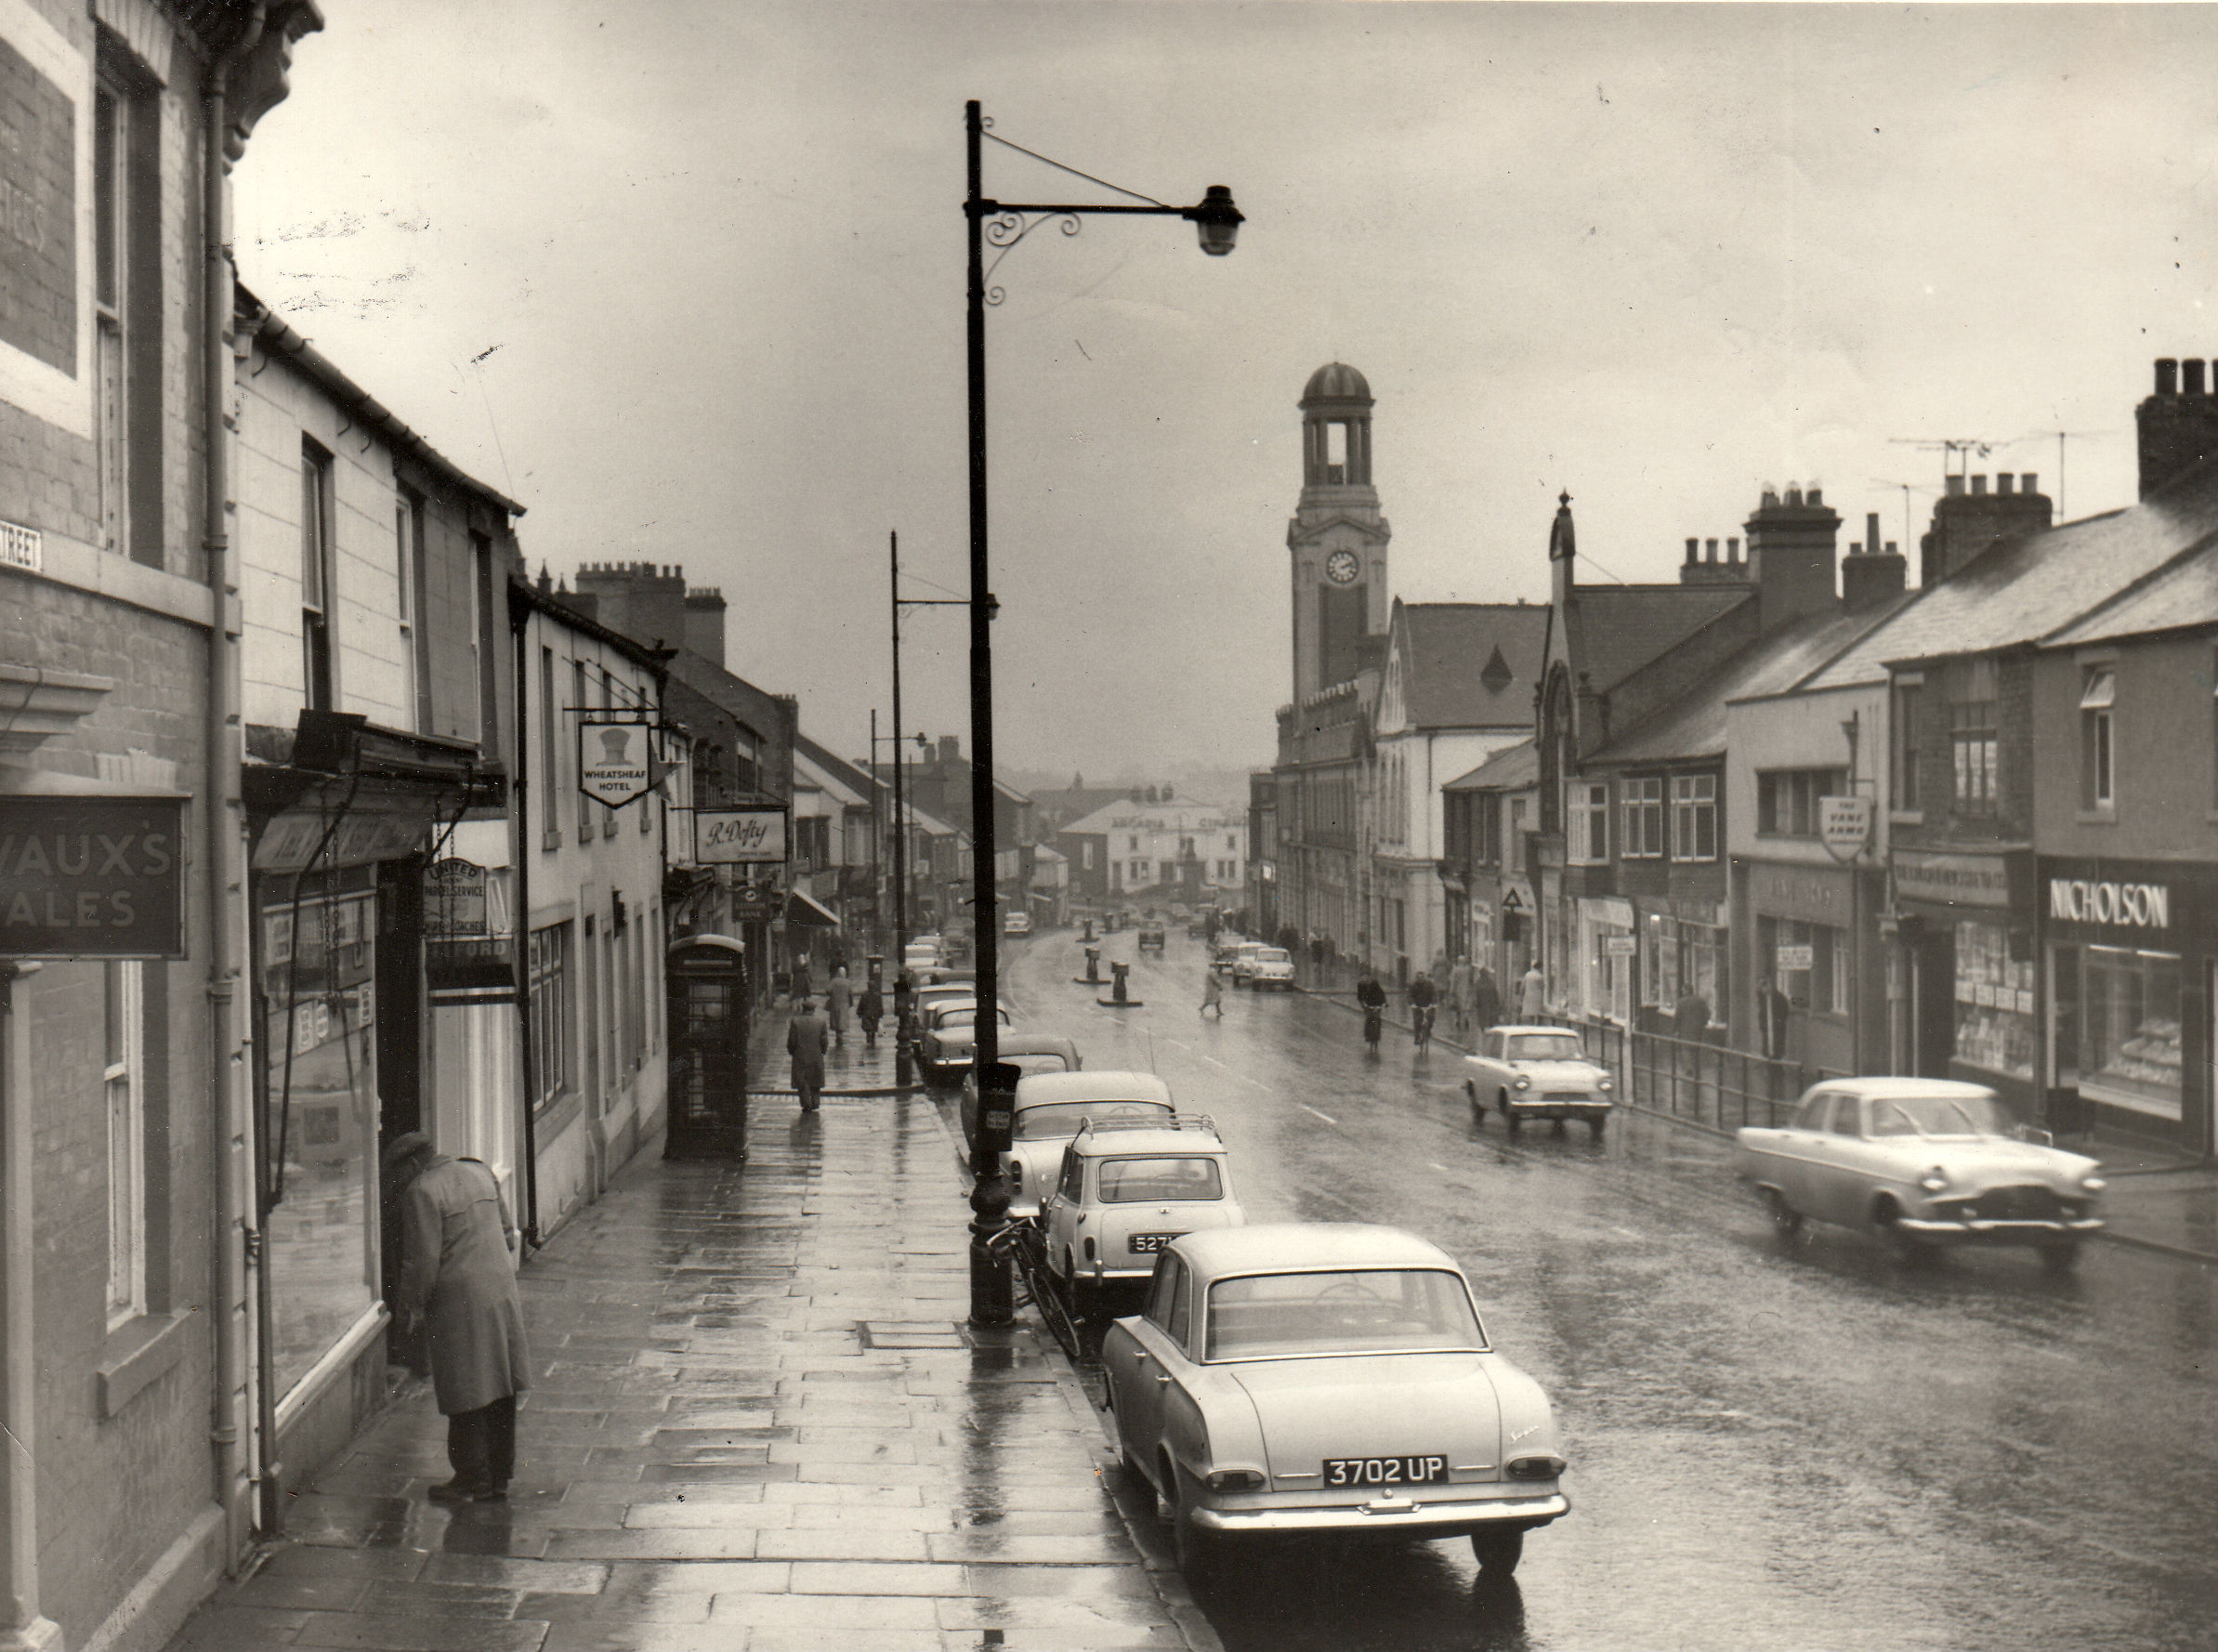 OLD CAR PIC: Spennymoor High Street five days before Christmas 1963, and it was raining. On the left is the Wheatsheaf Hotel, which we think is now the Citizen's Advice Bureau, and on the right is The Vane Arms which last time we looked was Quinns Inn.